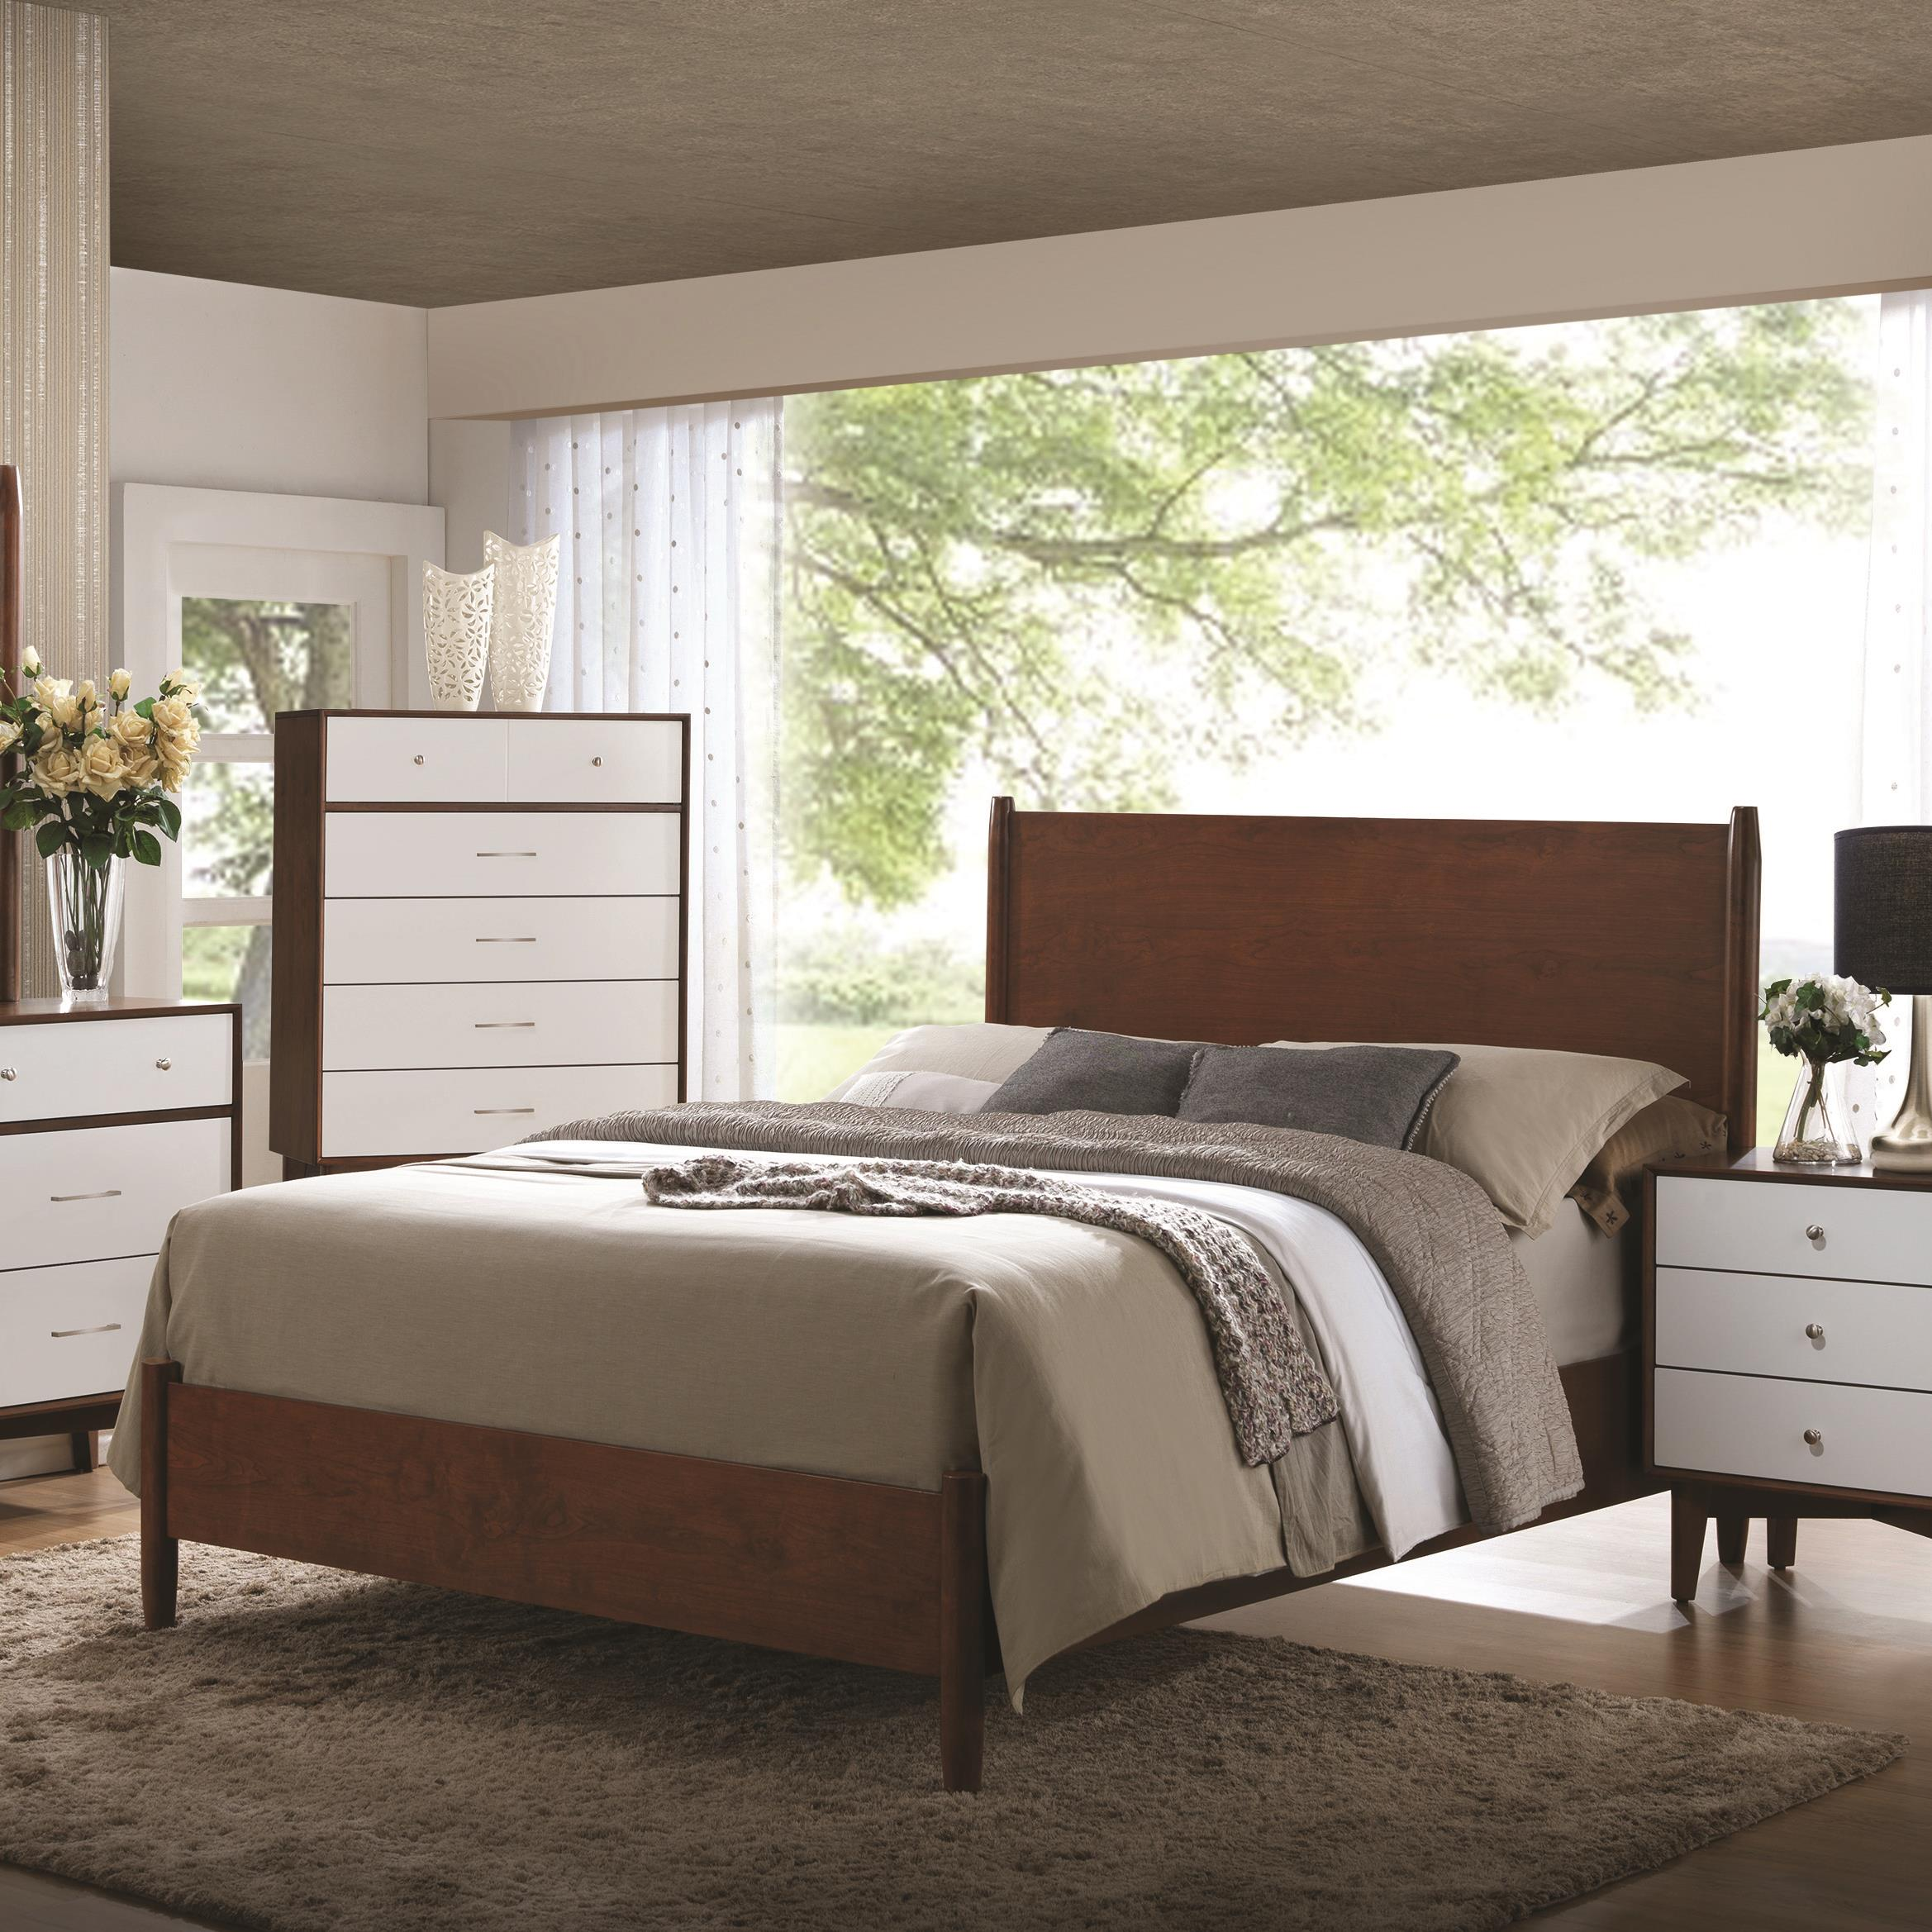 Coaster Oakwood California King Bed - Item Number: 204301KW